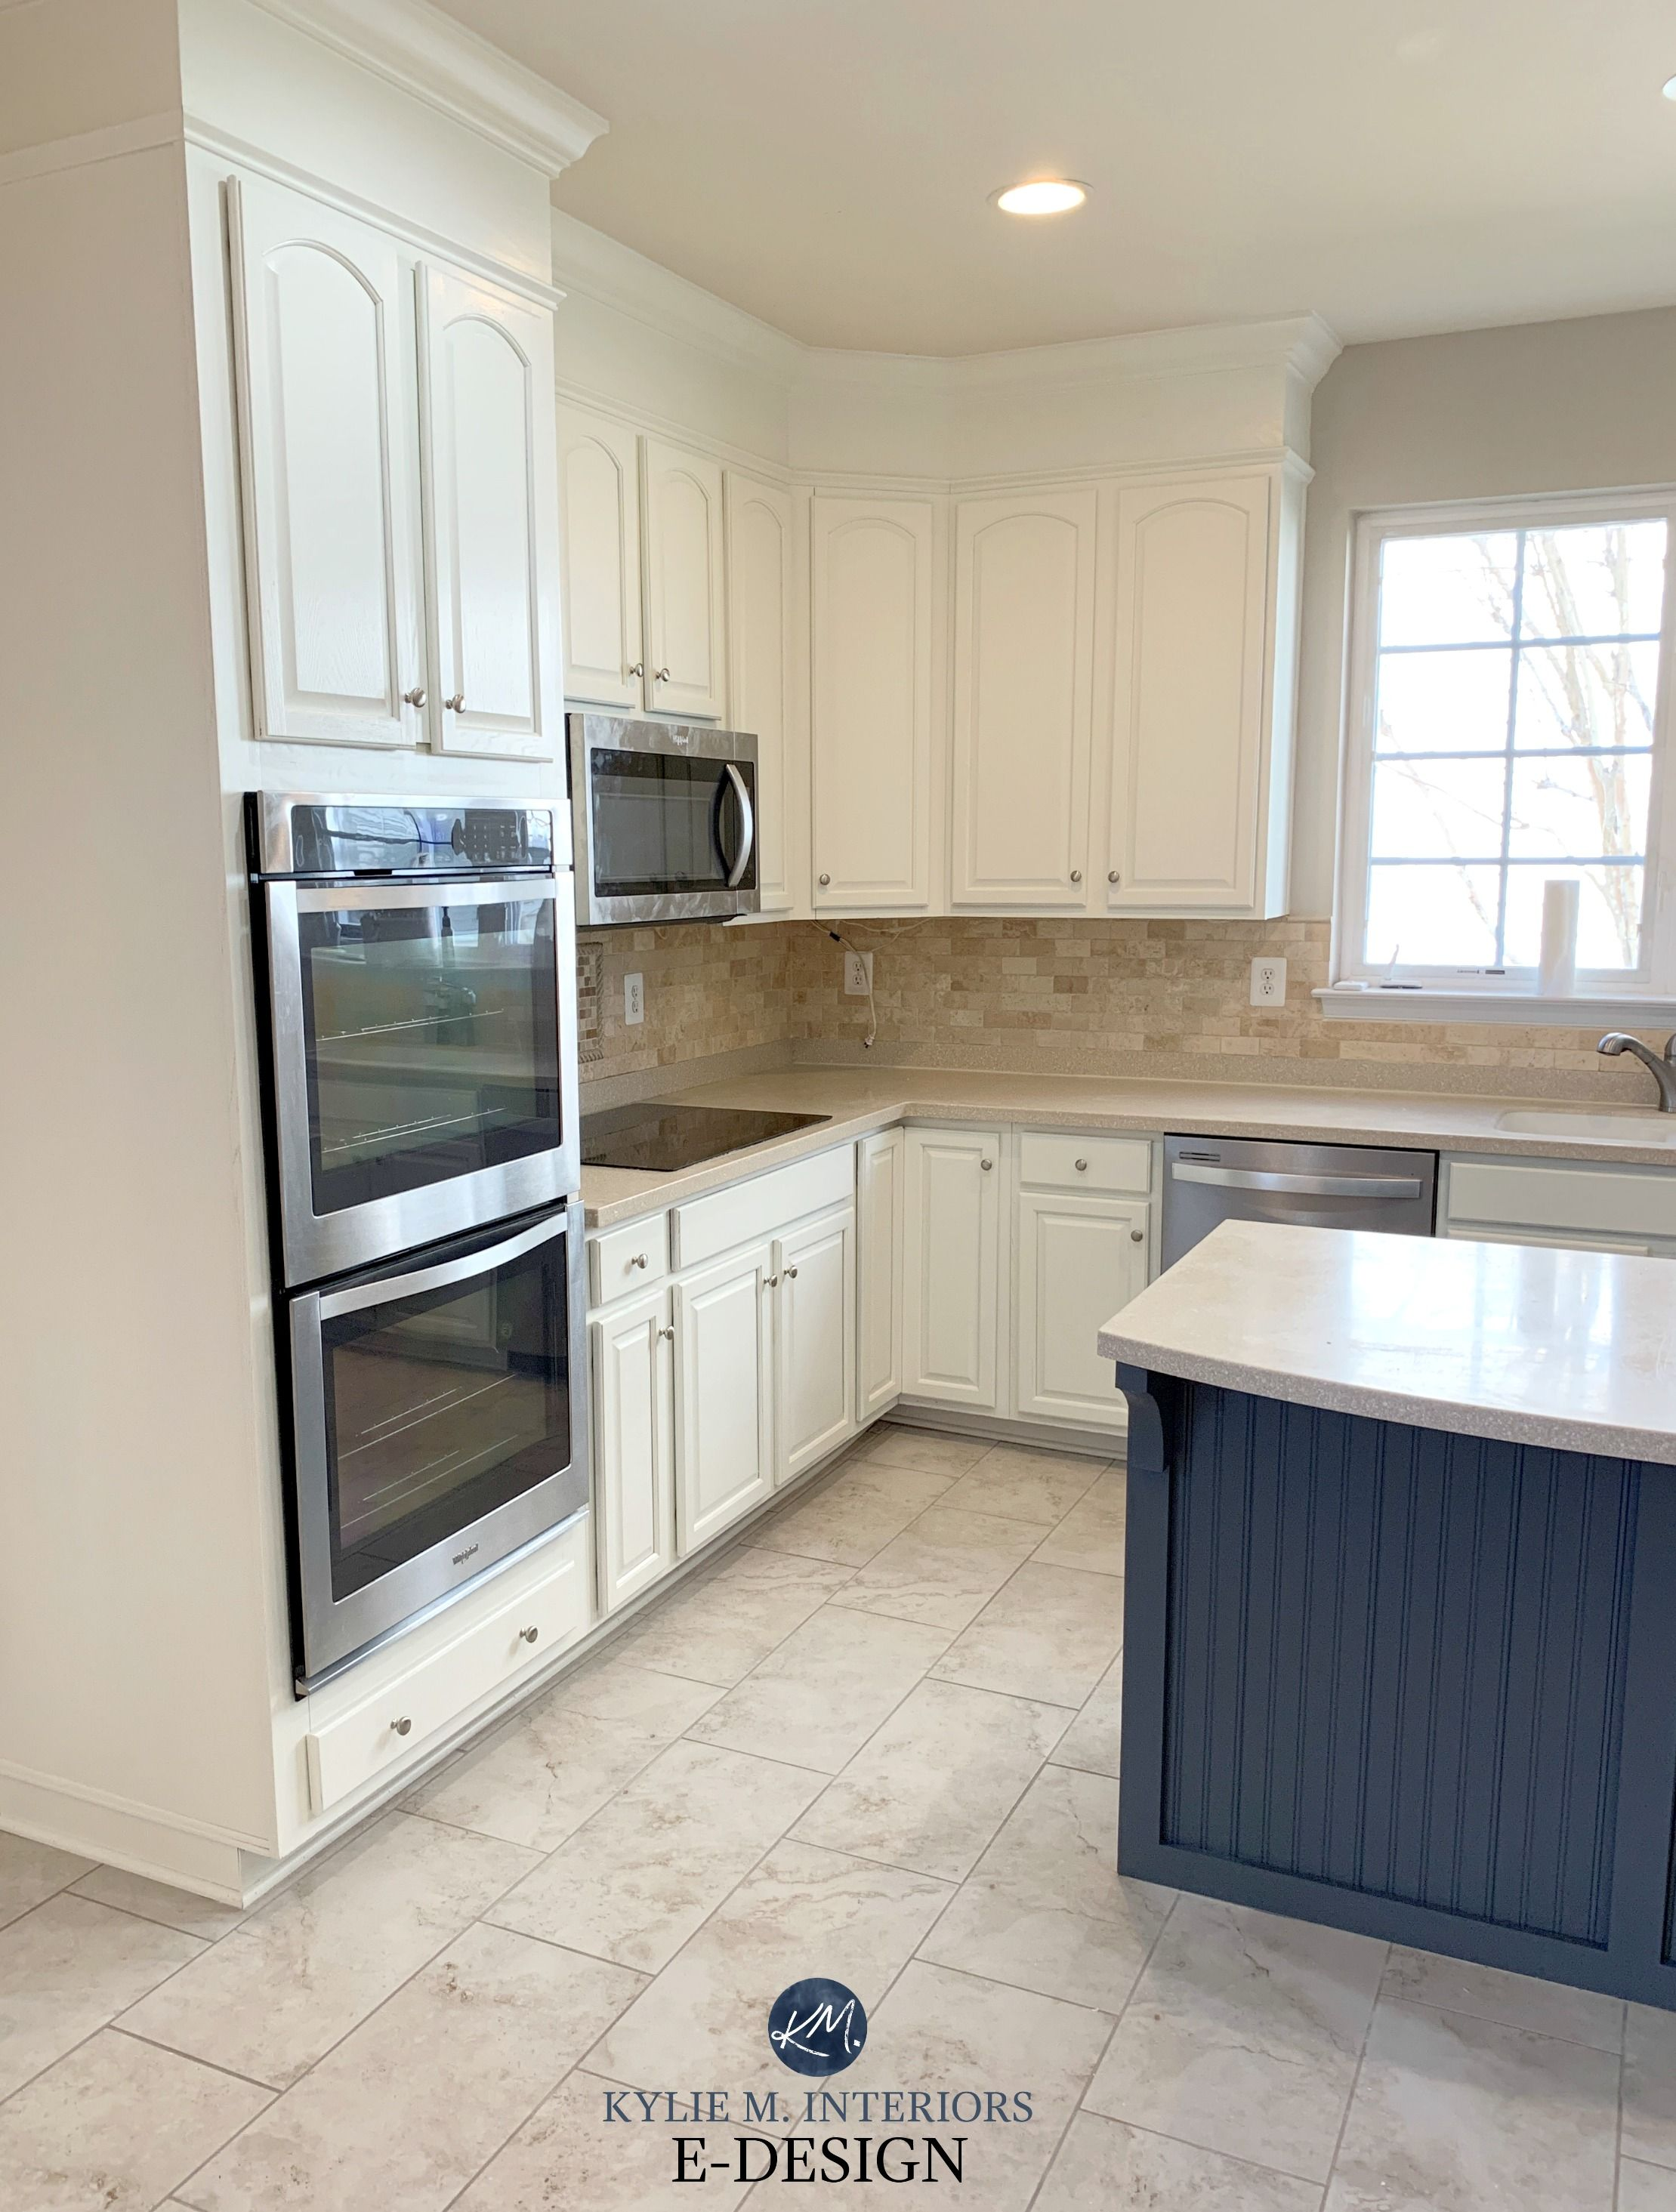 E Design 3 Painted Oak Maple Kitchen Cabinet Projects Beige Kitchen Maple Kitchen Cabinets Kitchen Cabinet Styles